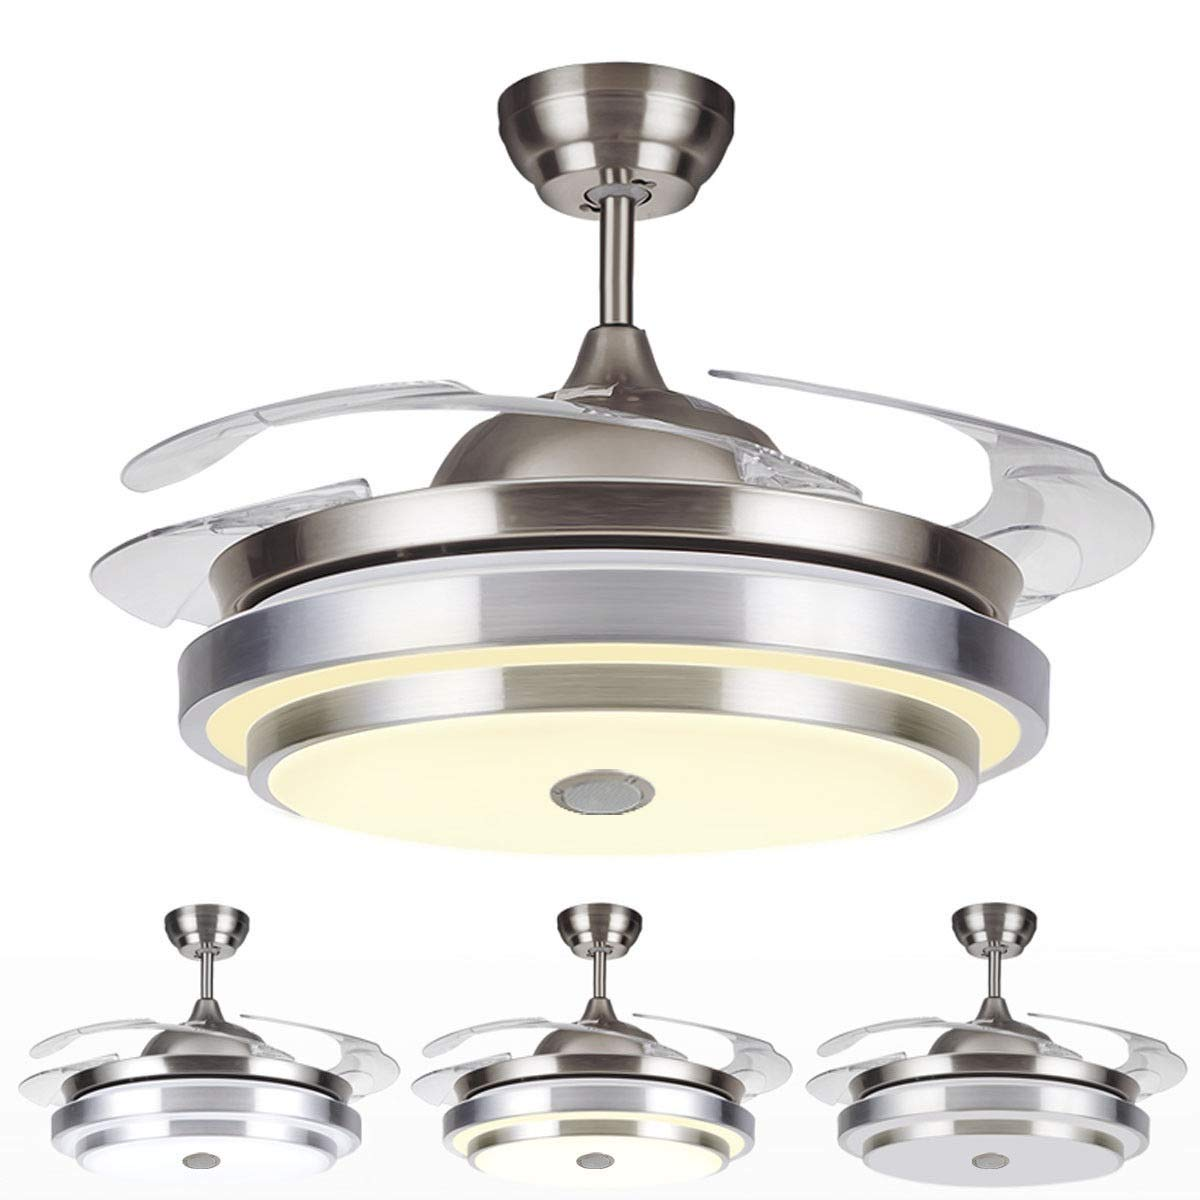 TC-Home Warm Cool Natural White Ceiling Fan Light Retractable Blades with Bluetooth speaker/Remote control